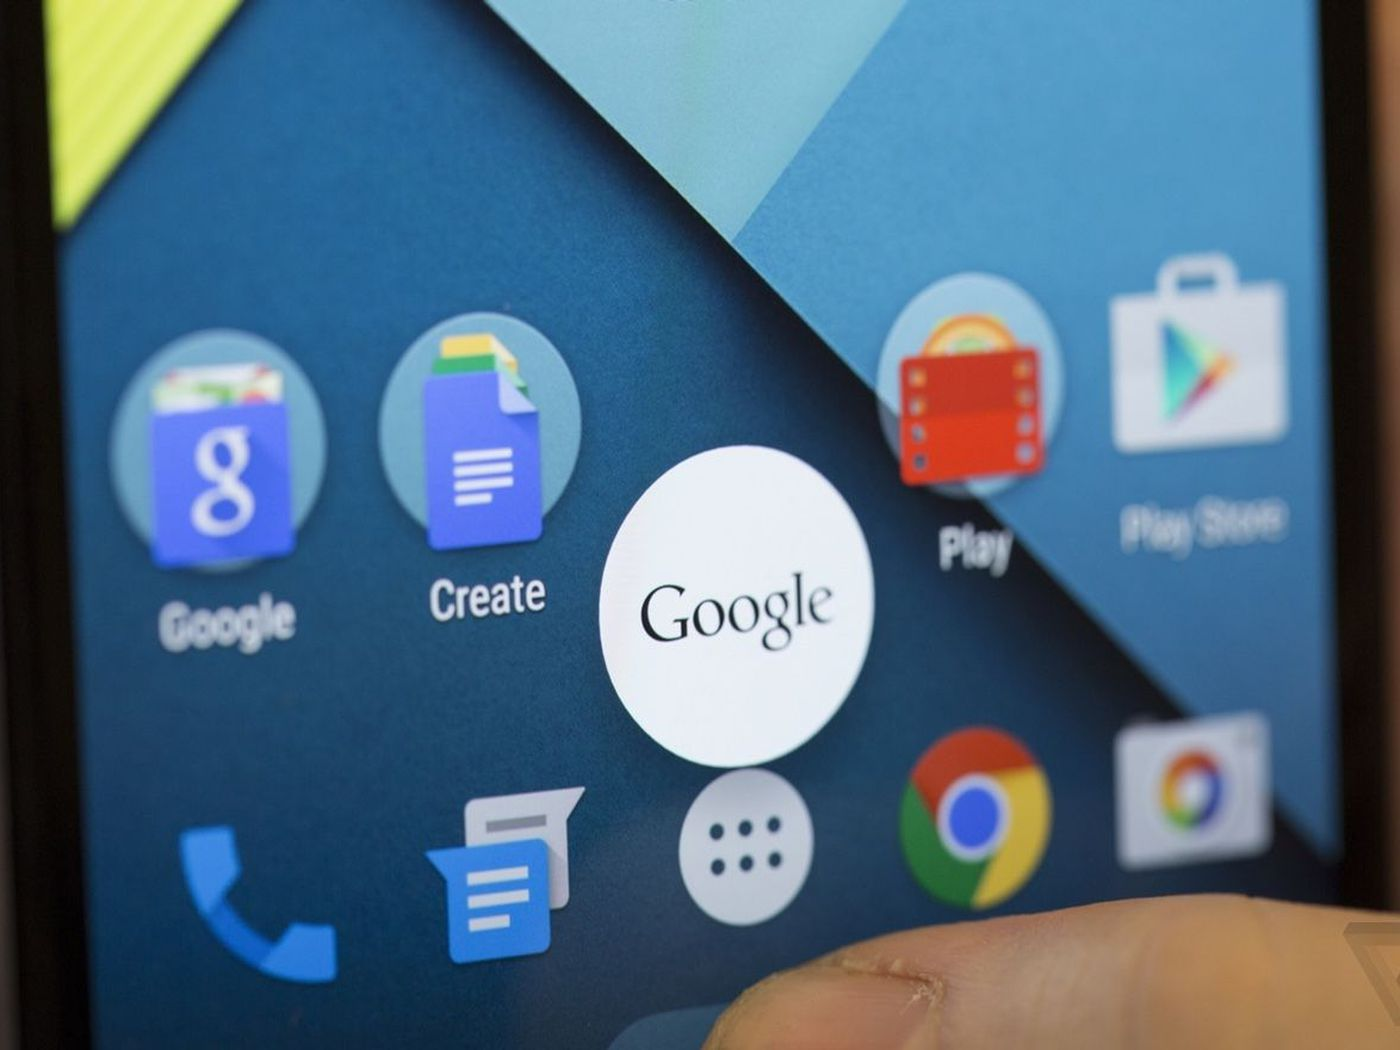 New Android feature keeps your phone unlocked while it's in